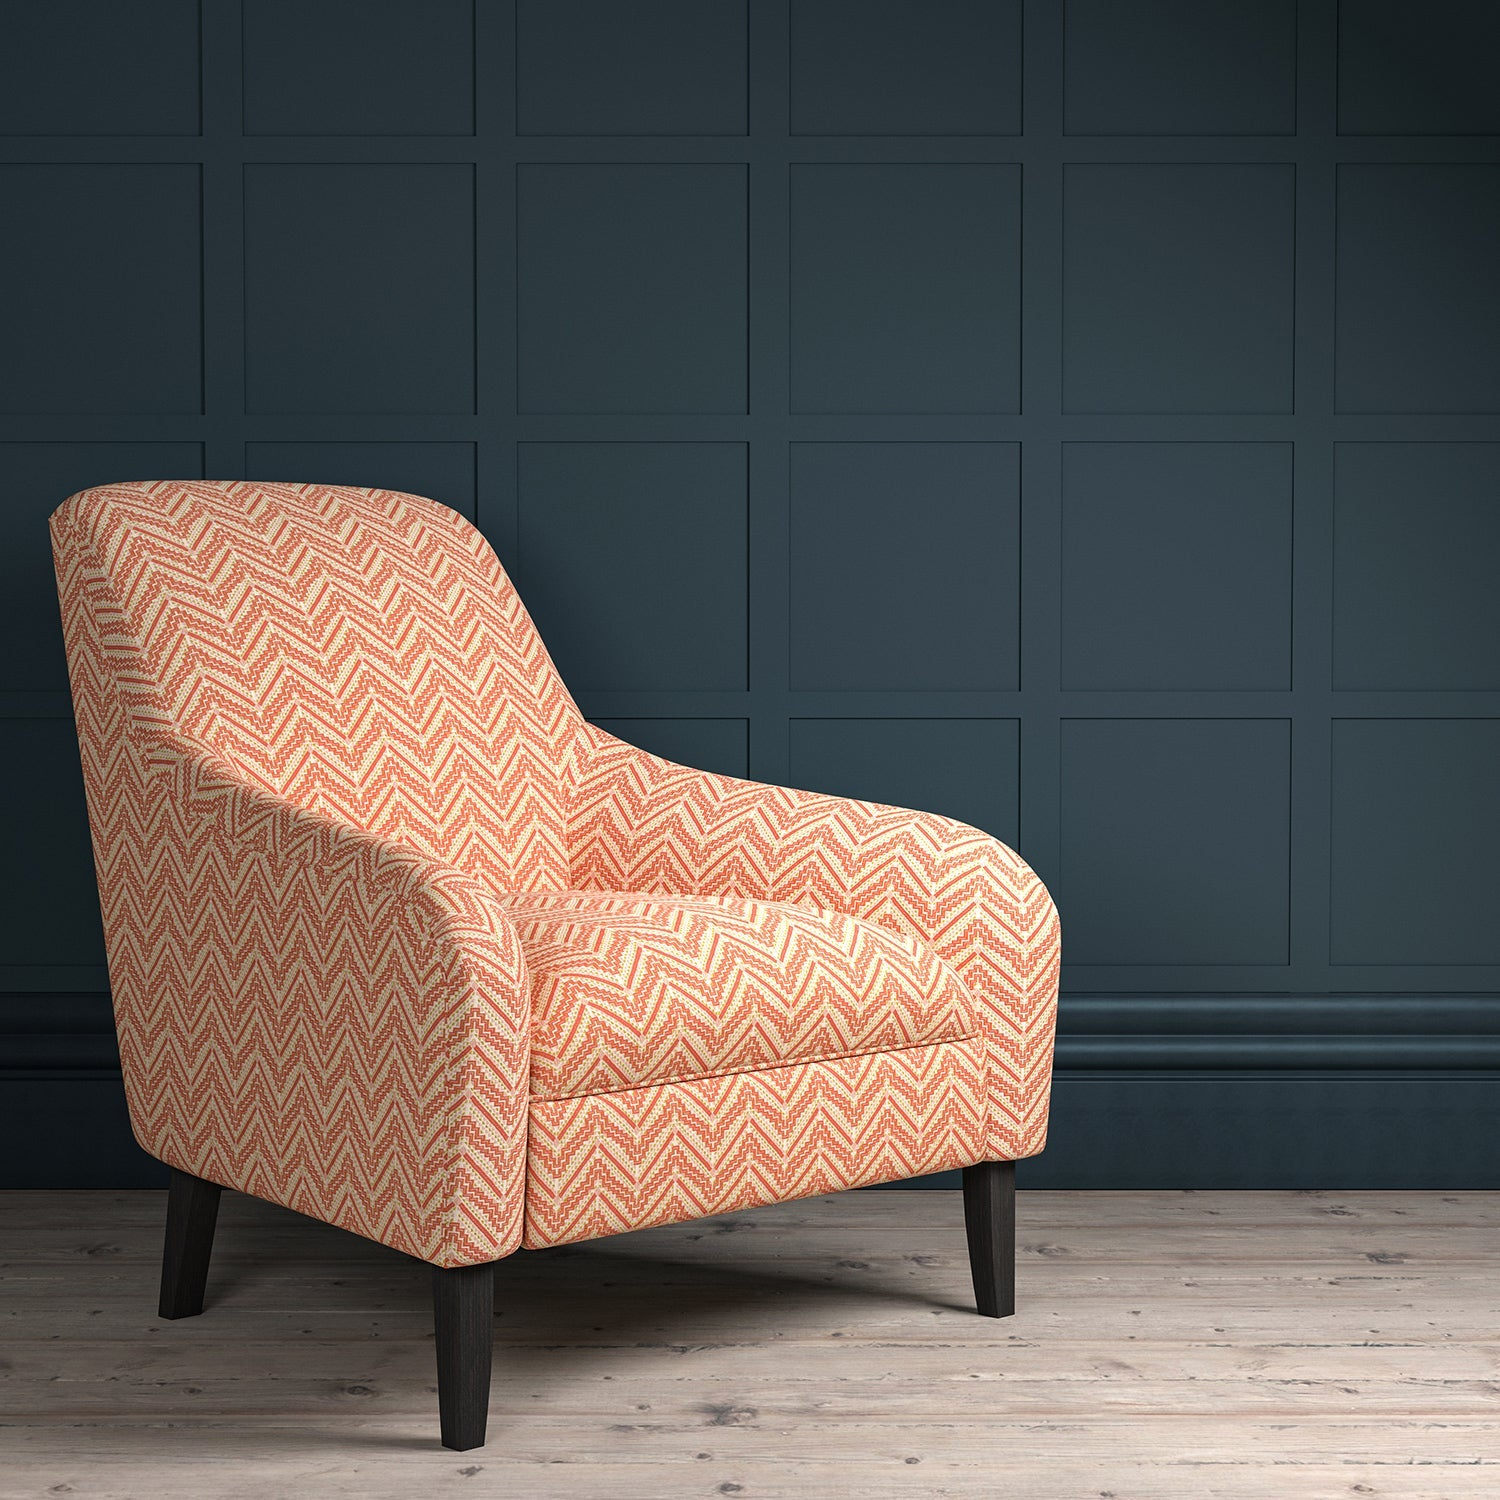 Chair upholstered in a peach coloured zig zag geometric upholstery fabric